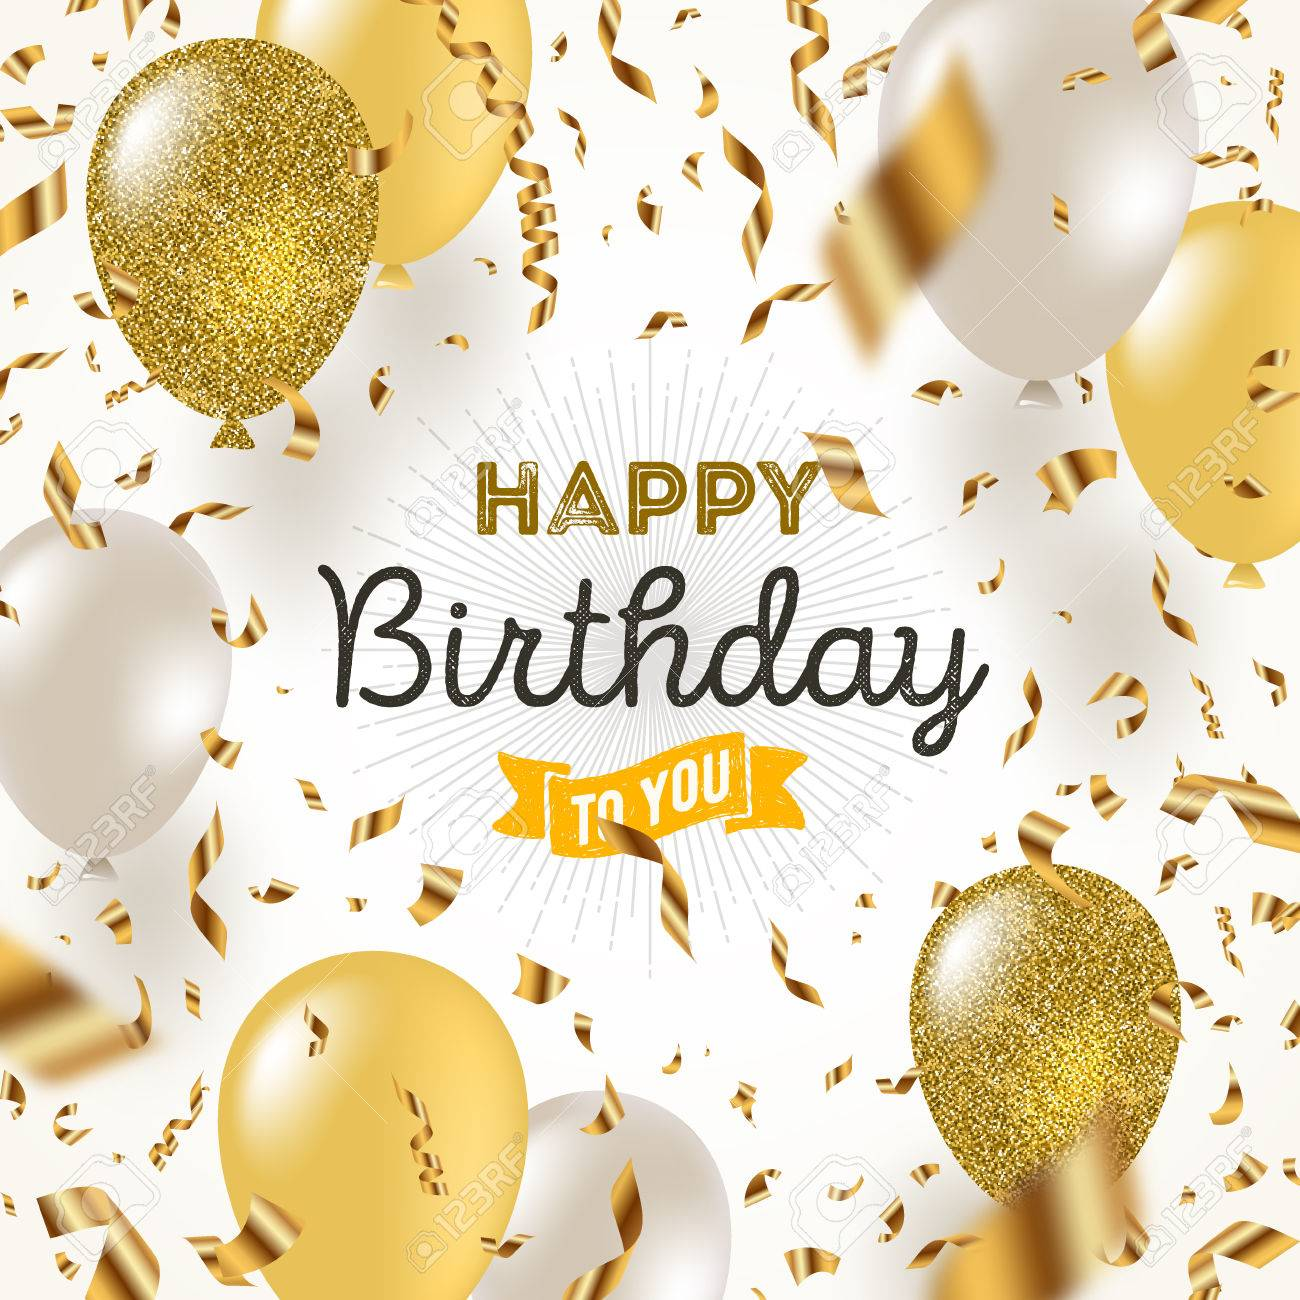 Happy birthday vector illustration - Golden foil confetti and white and glitter gold balloons. - 79409454